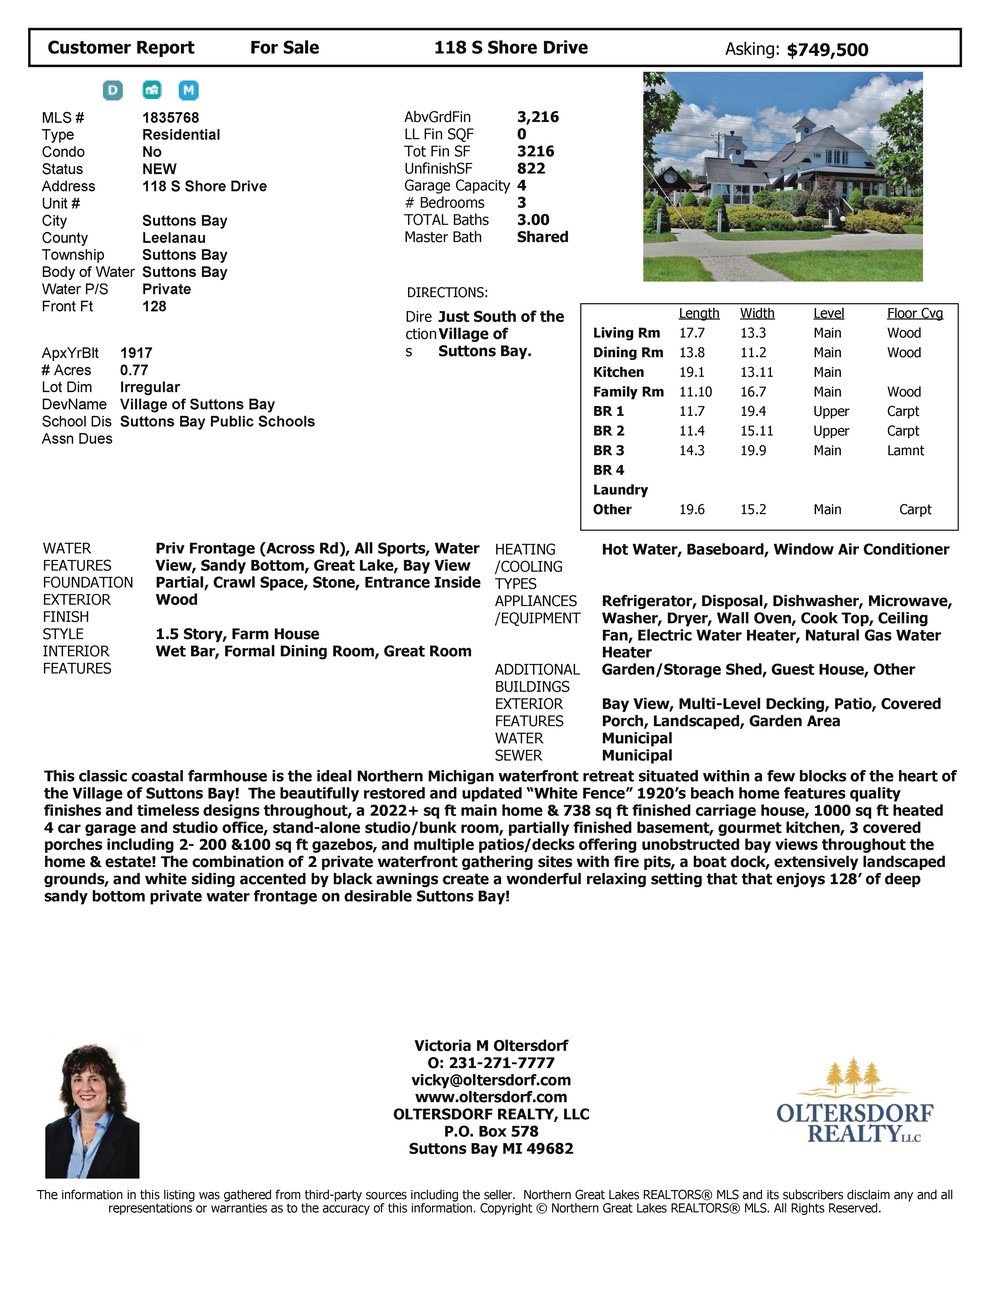 118 S Shore Drive, Suttons Bay, For Sale By Oltersdorf Realty - Marketing Packet (11).jpg